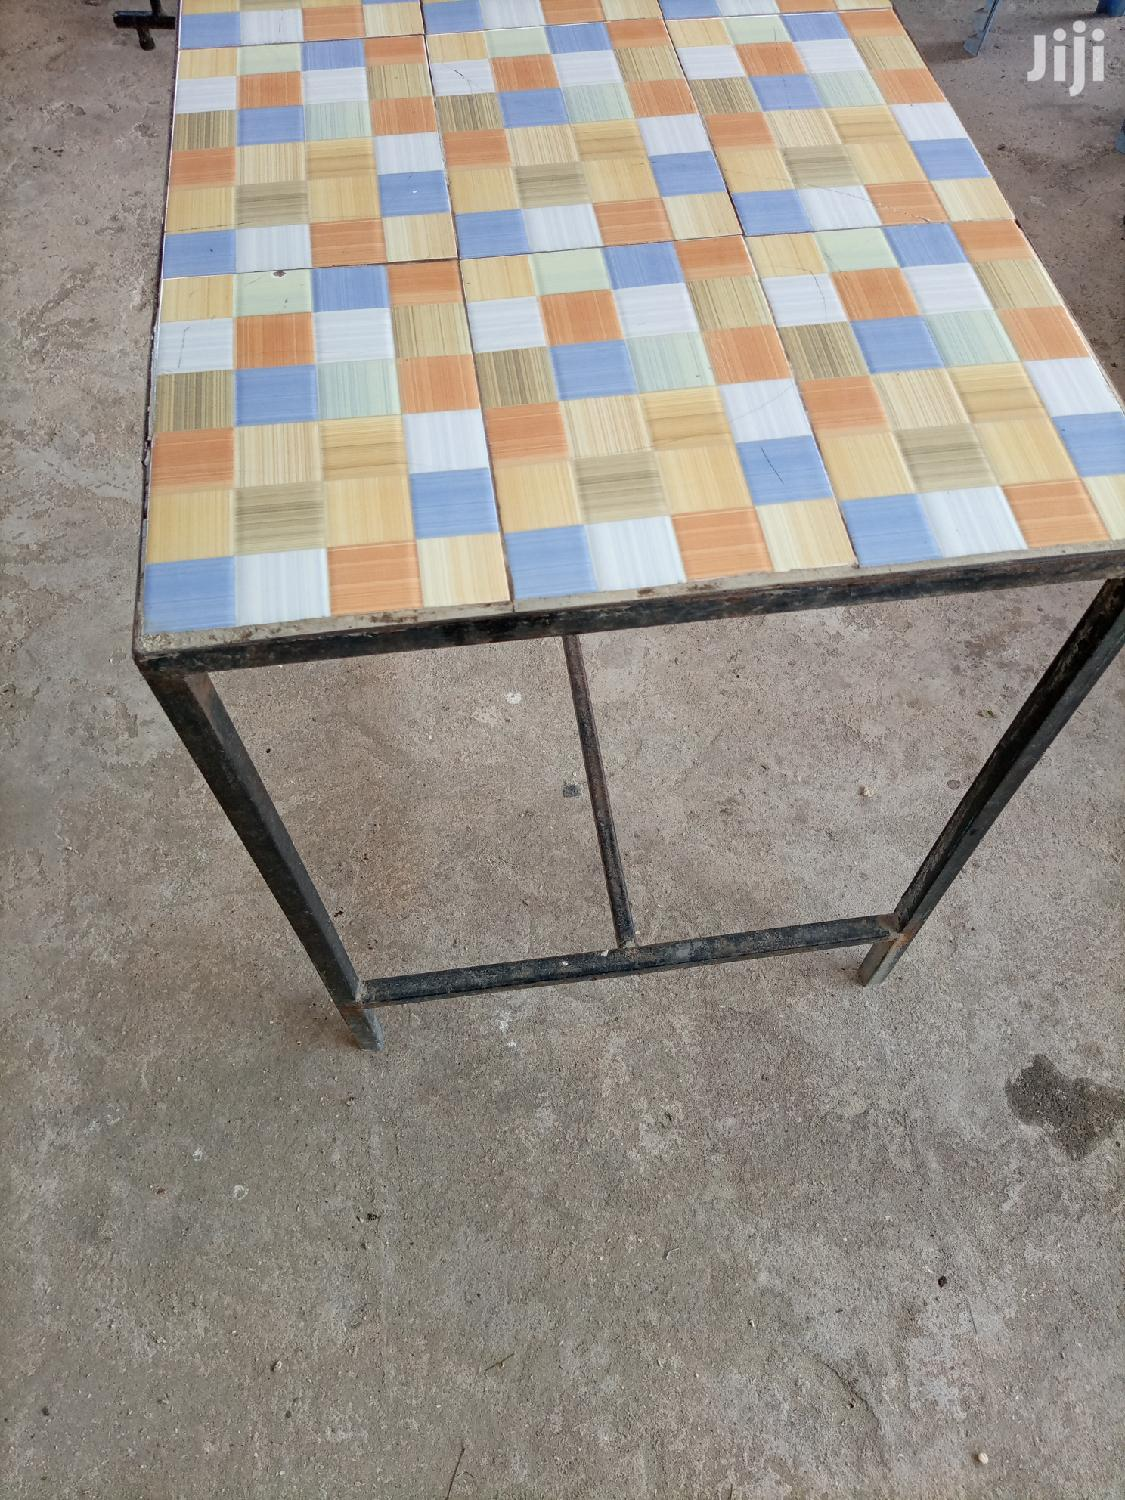 Tile Top Dining Table | Furniture for sale in Kisauni, Mombasa, Kenya